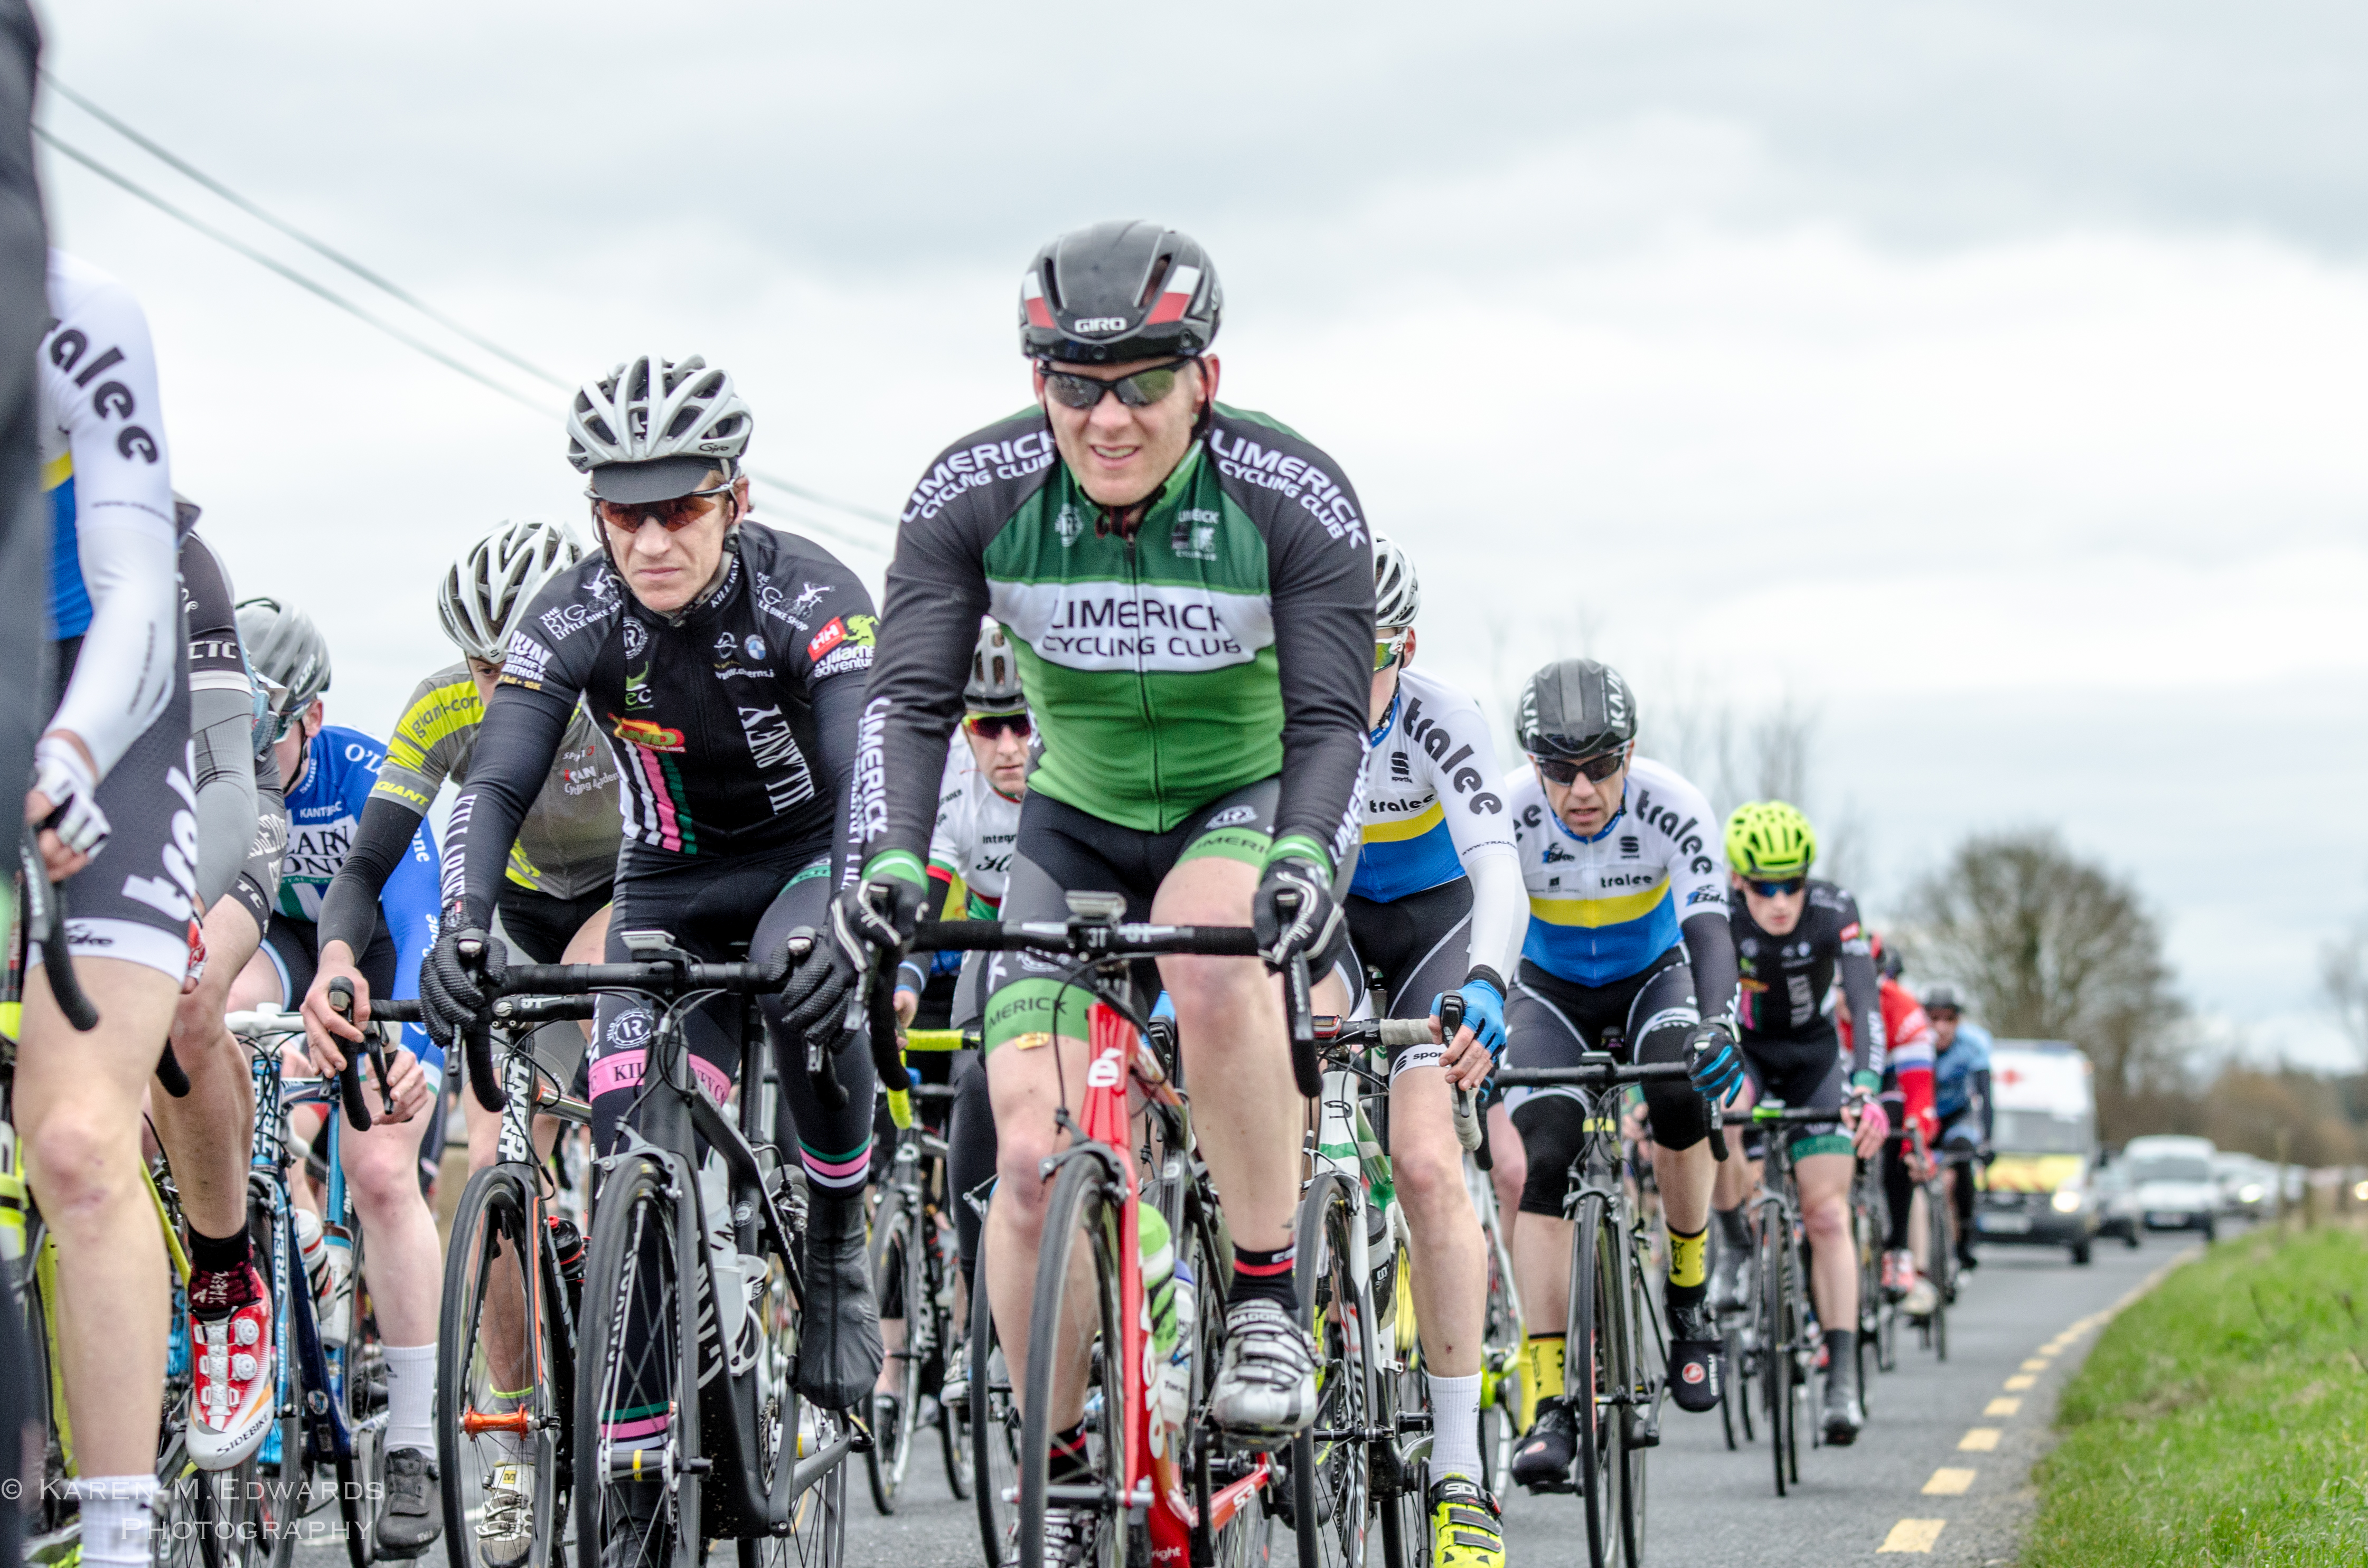 Youth Cycle Training - Limerick Cycling ClubLimerick Cycling